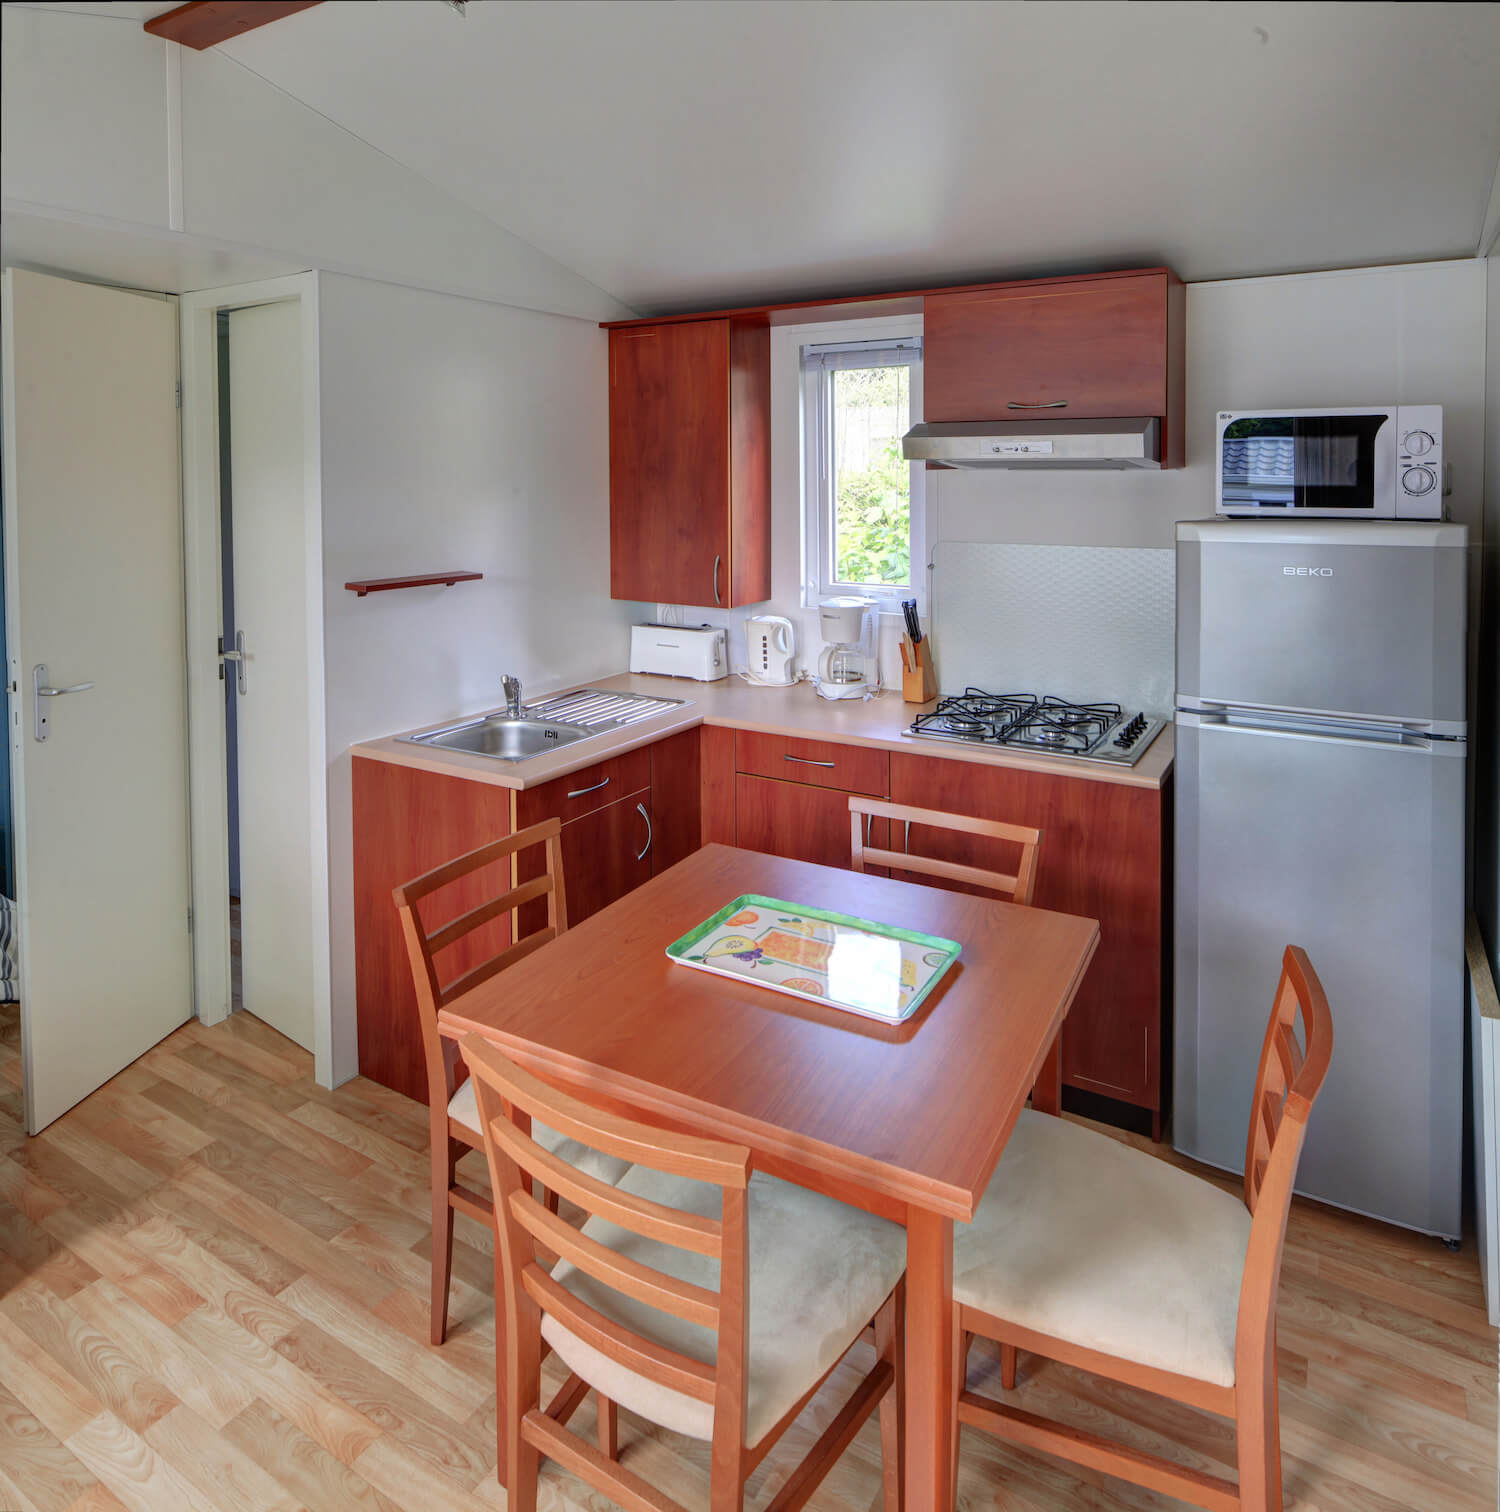 Cosy Et Tendance Salle De Bain mobile home rental in quimper | holiday rental in brittany